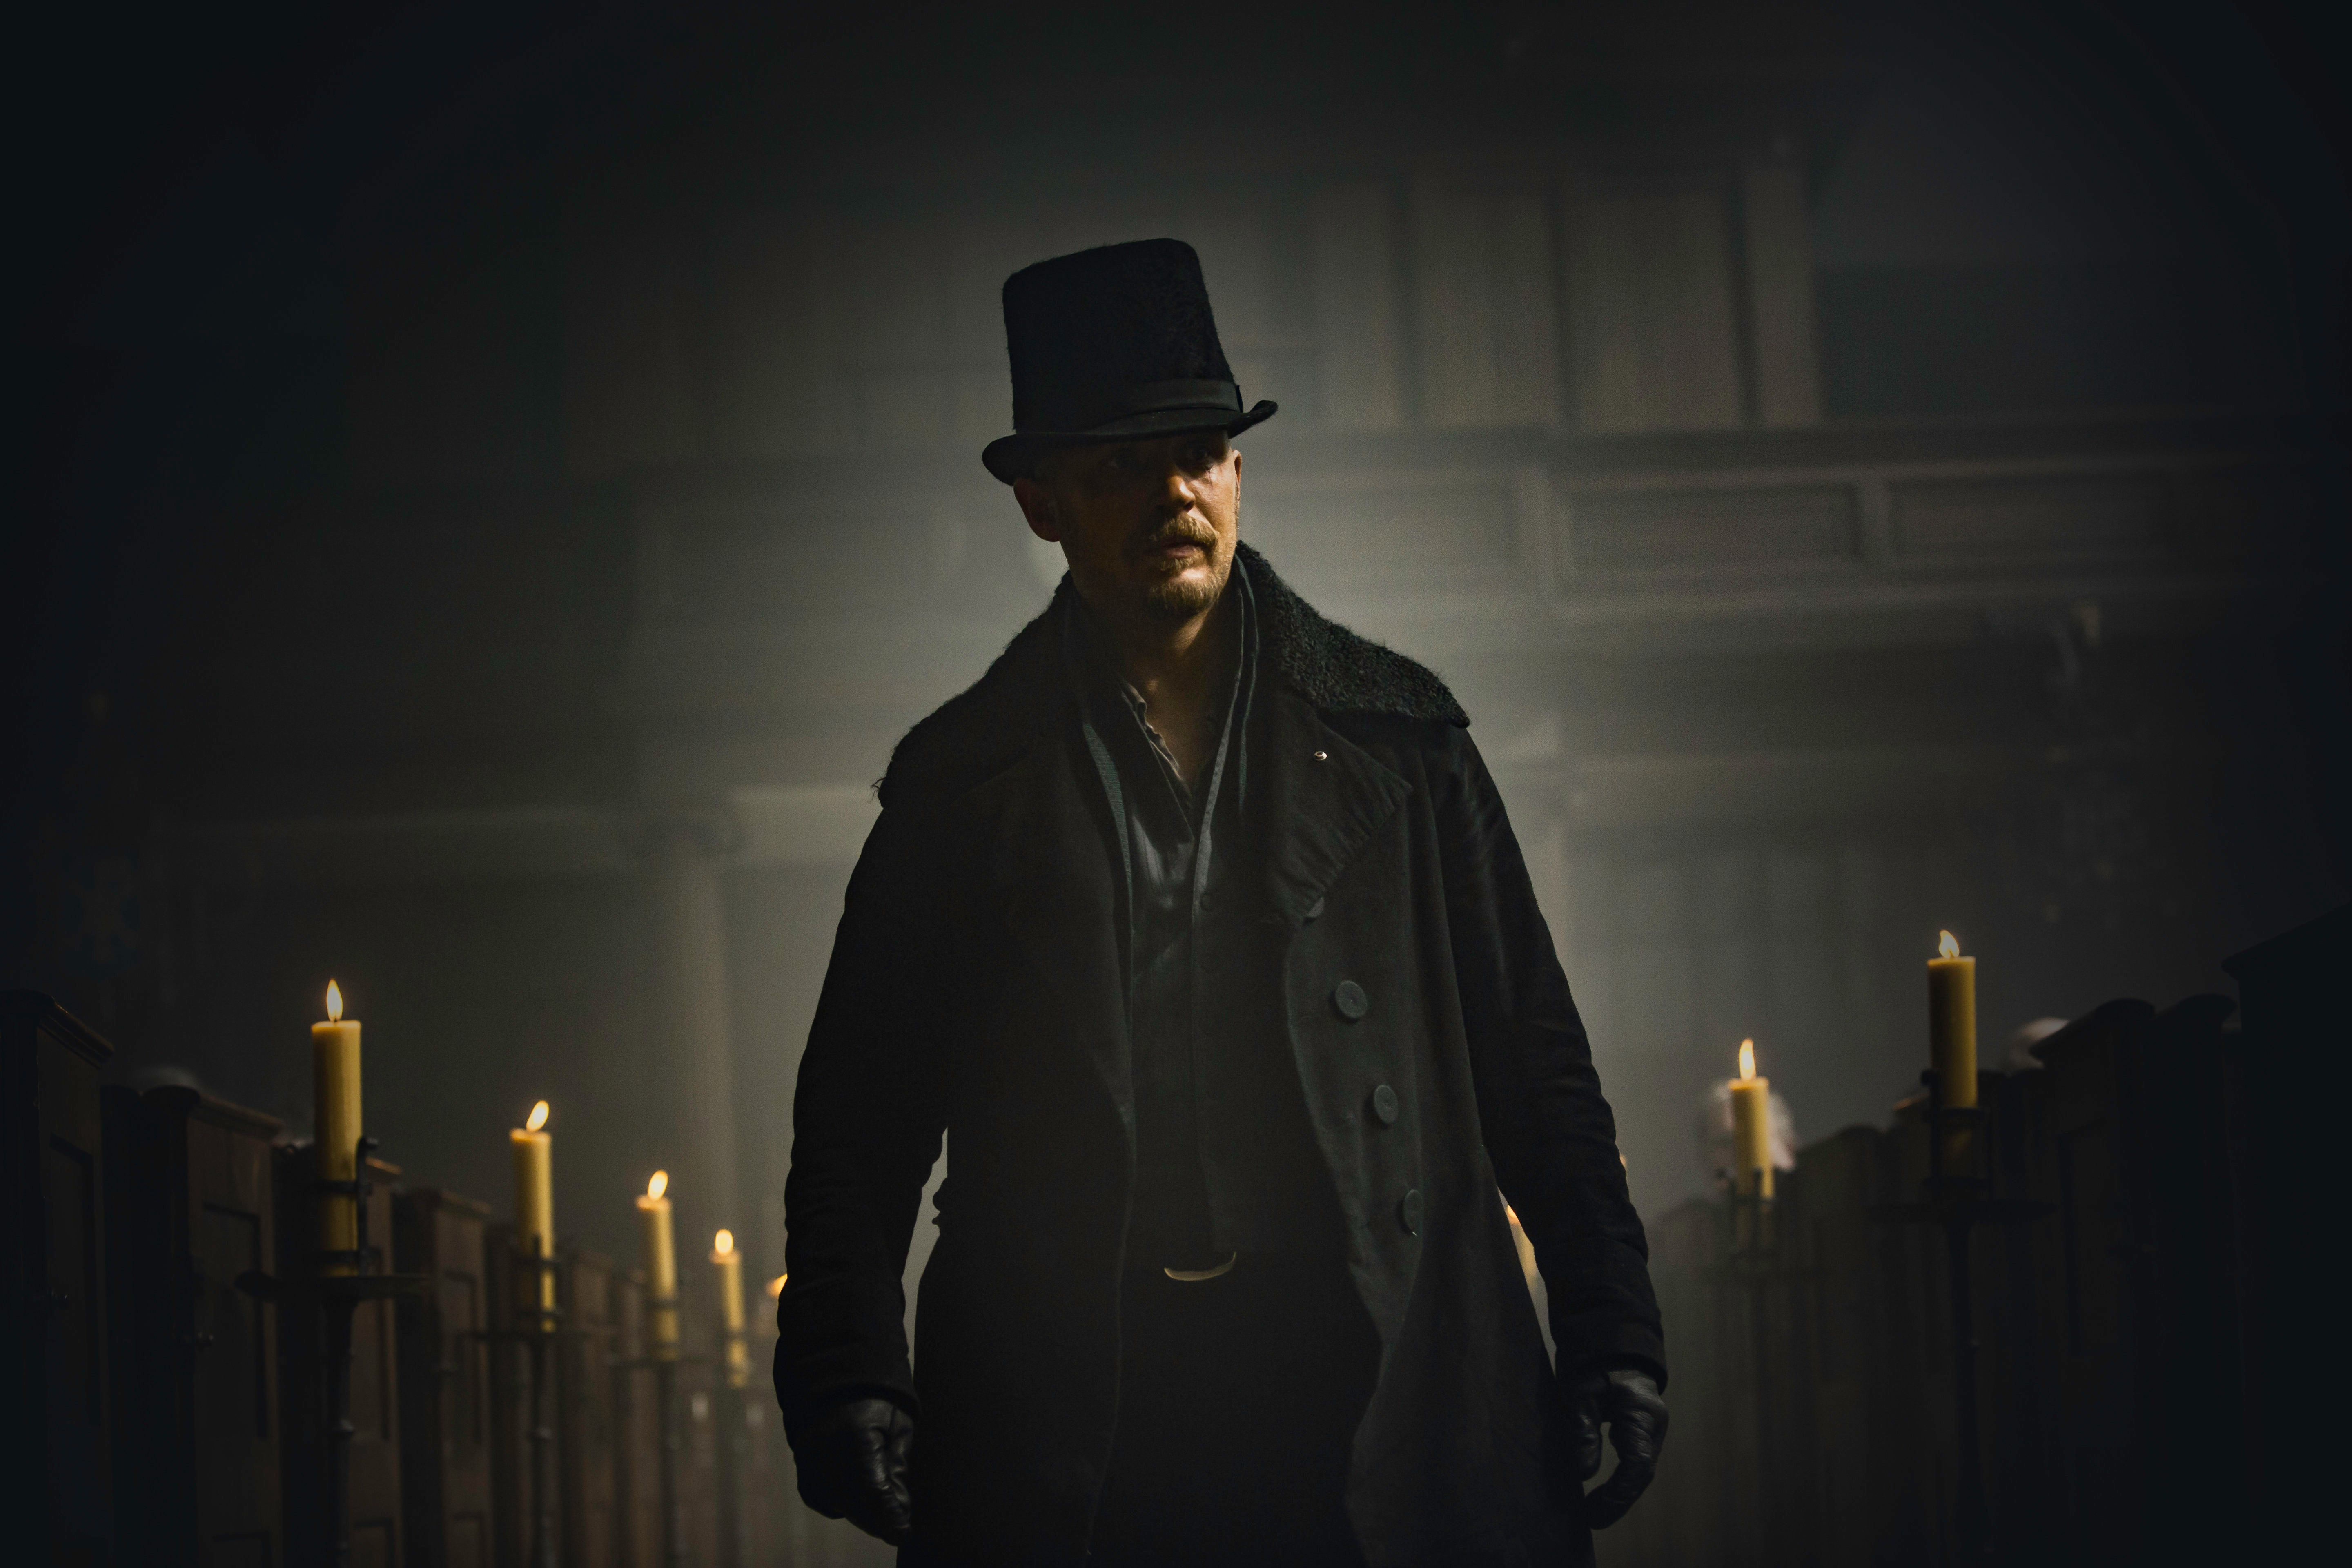 'Taboo' Writer Reveals 'Two More Series And Out' Of Tom Hardy Period